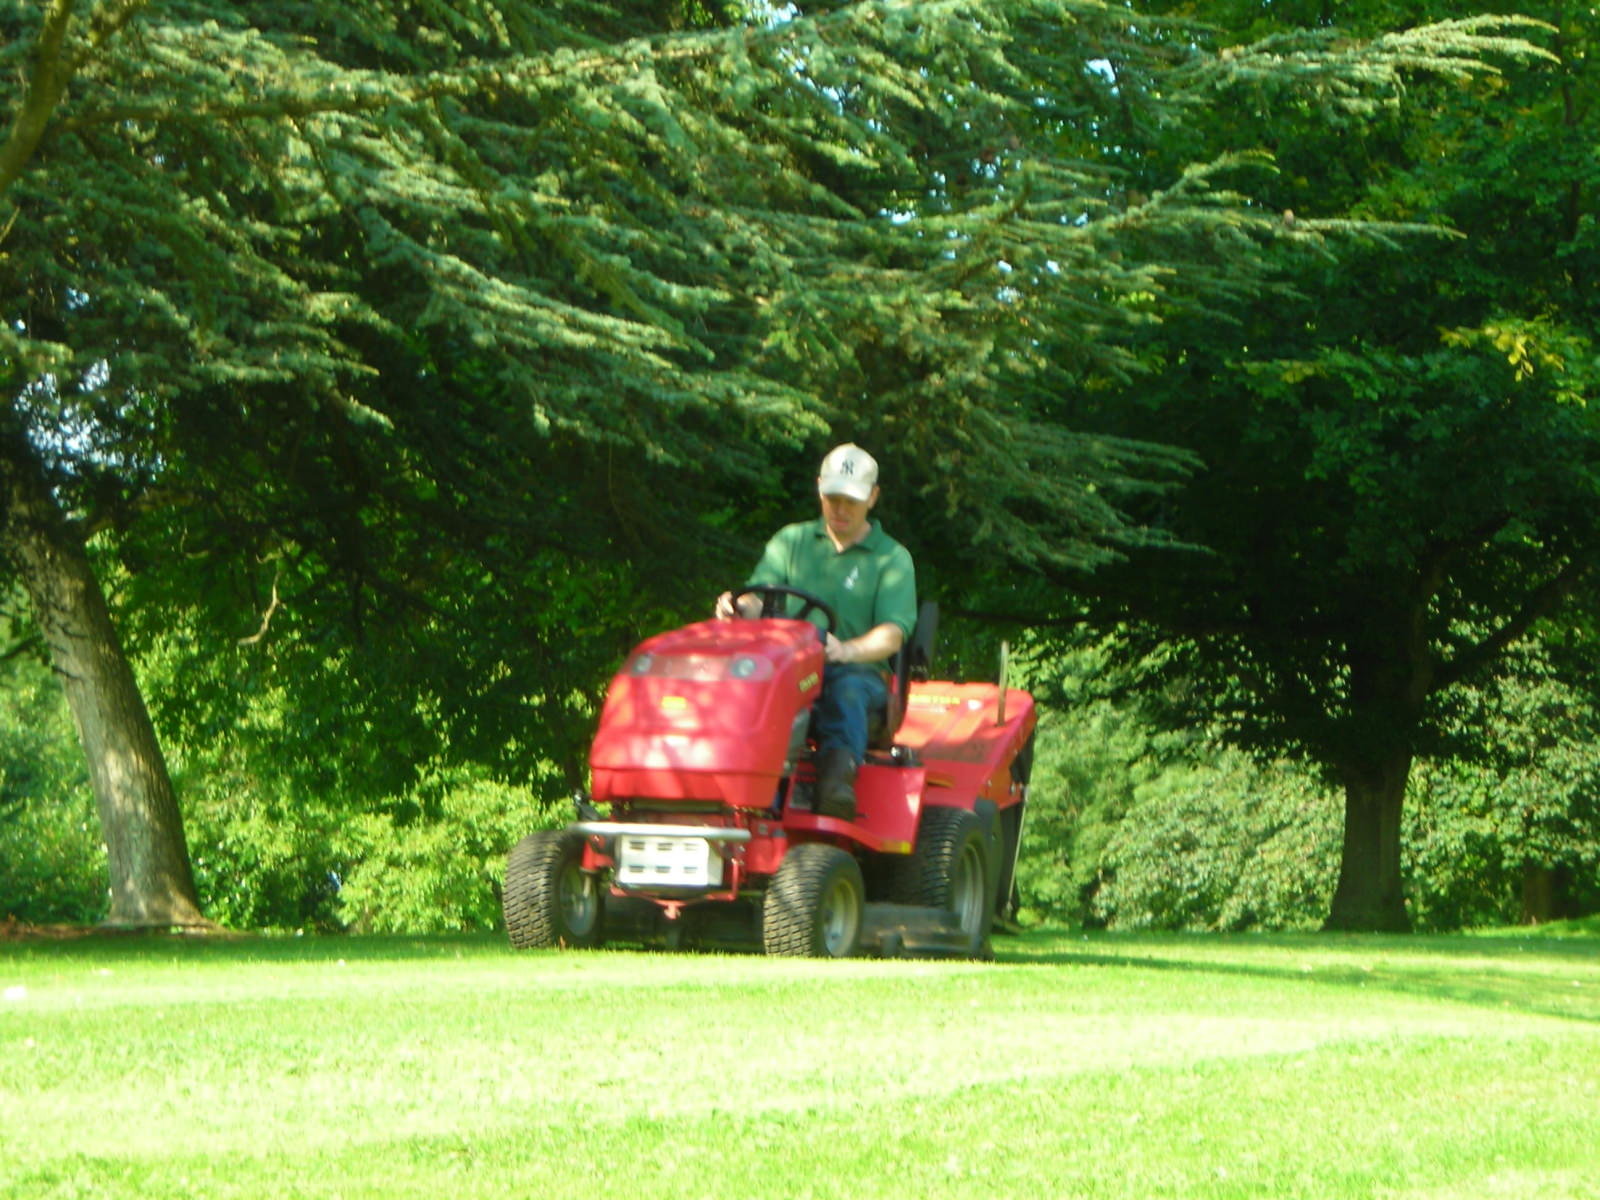 lawn_care_ride_on_mower_grass_mowing